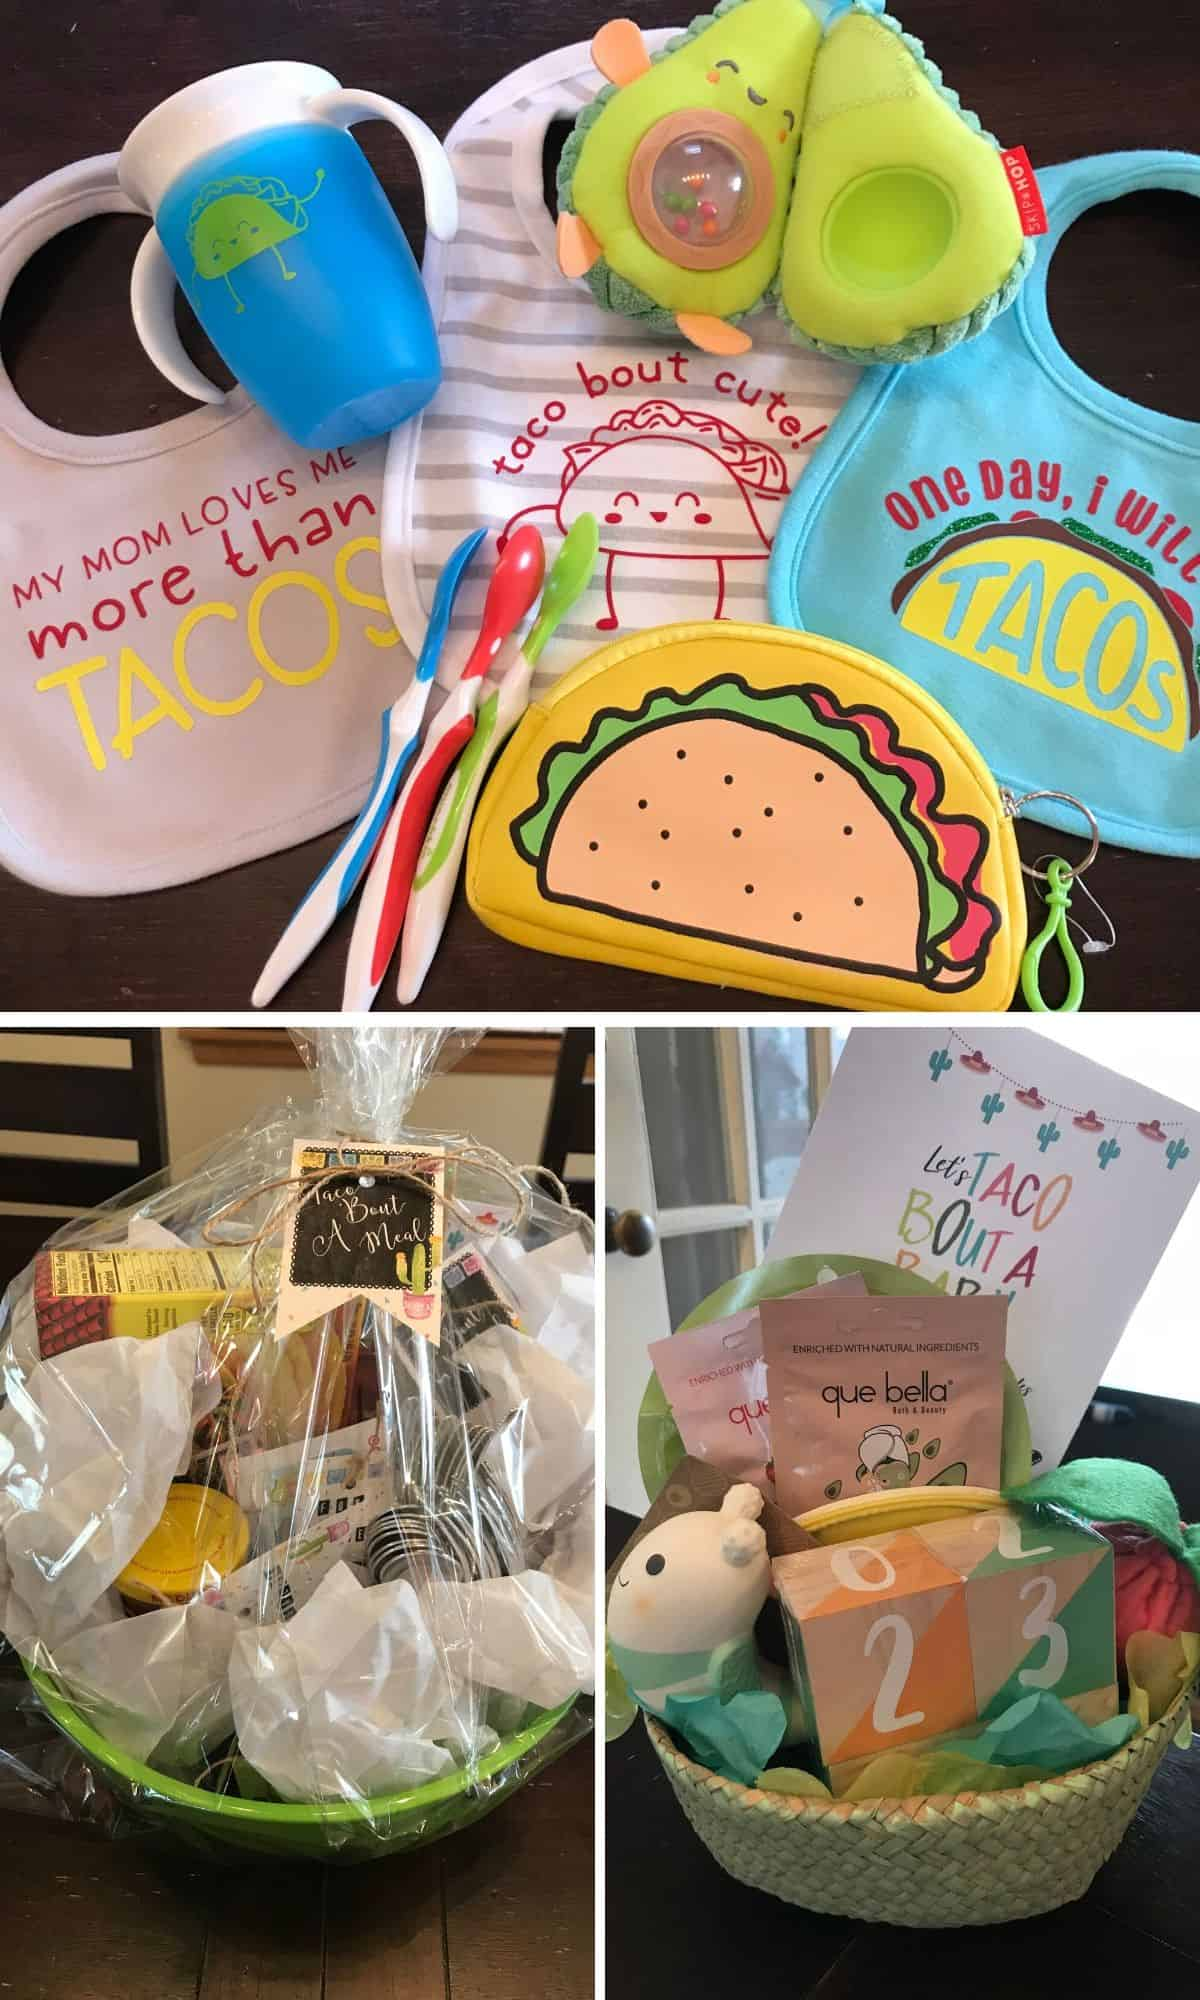 Baby Shower Gifts in Taco Theme